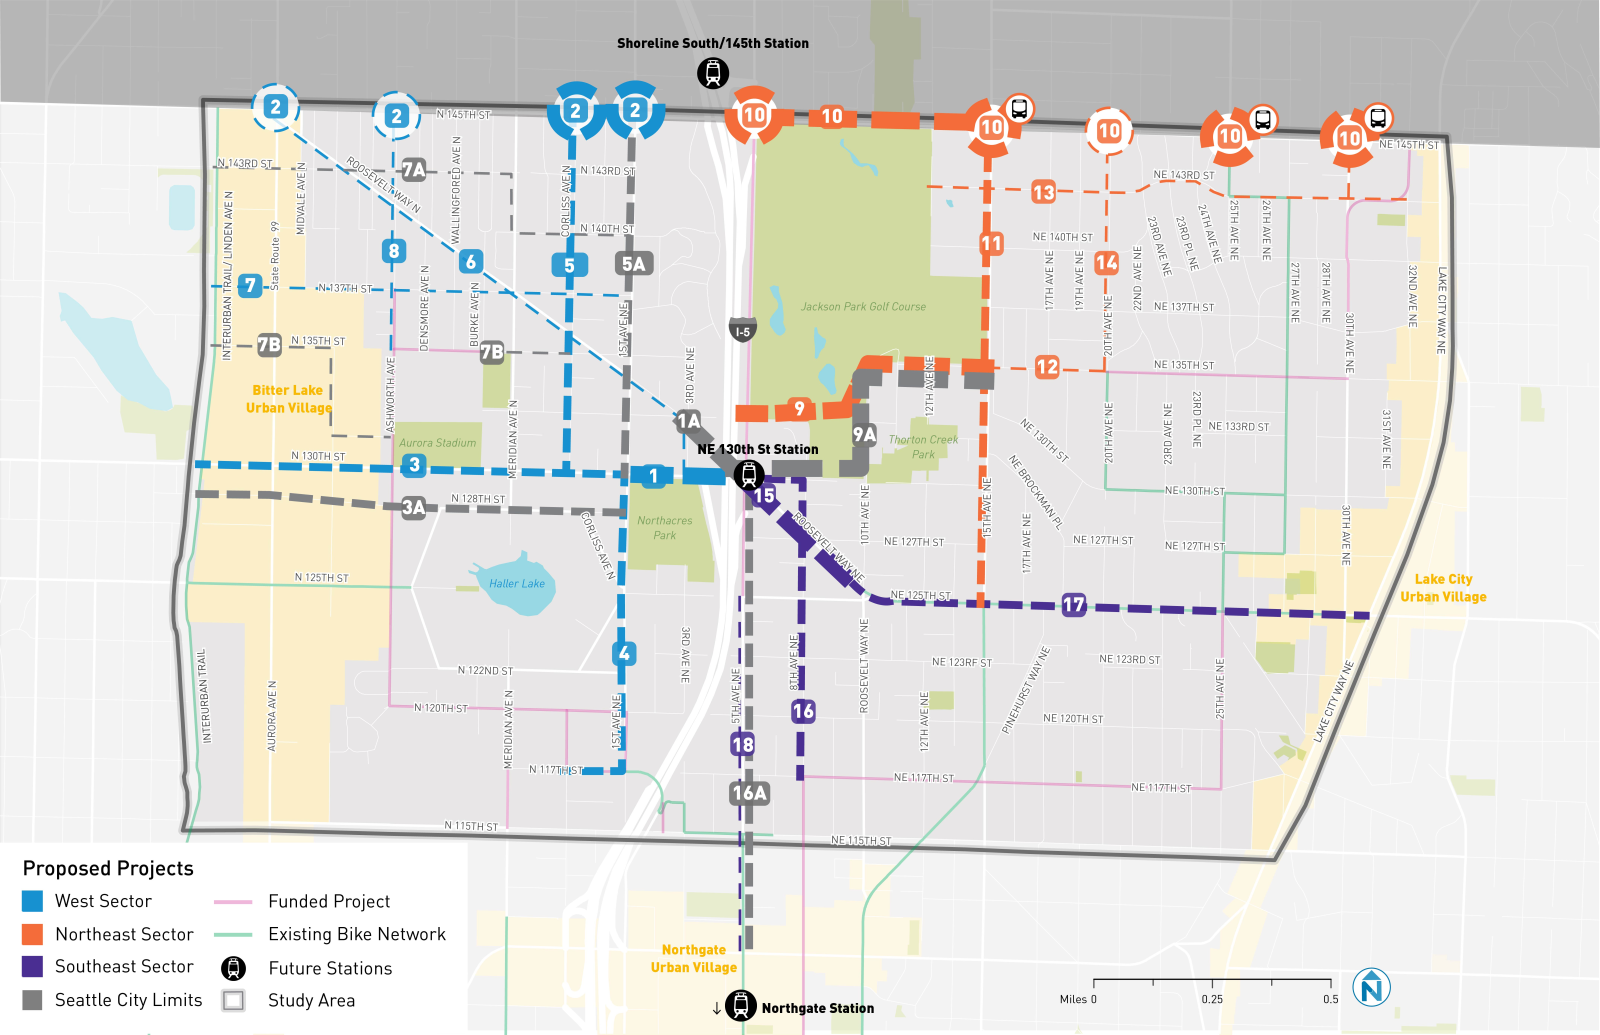 Seattle Presents Potential Improvements Around Light Rail Stations At 130th And 145th Seattle Transit Blog